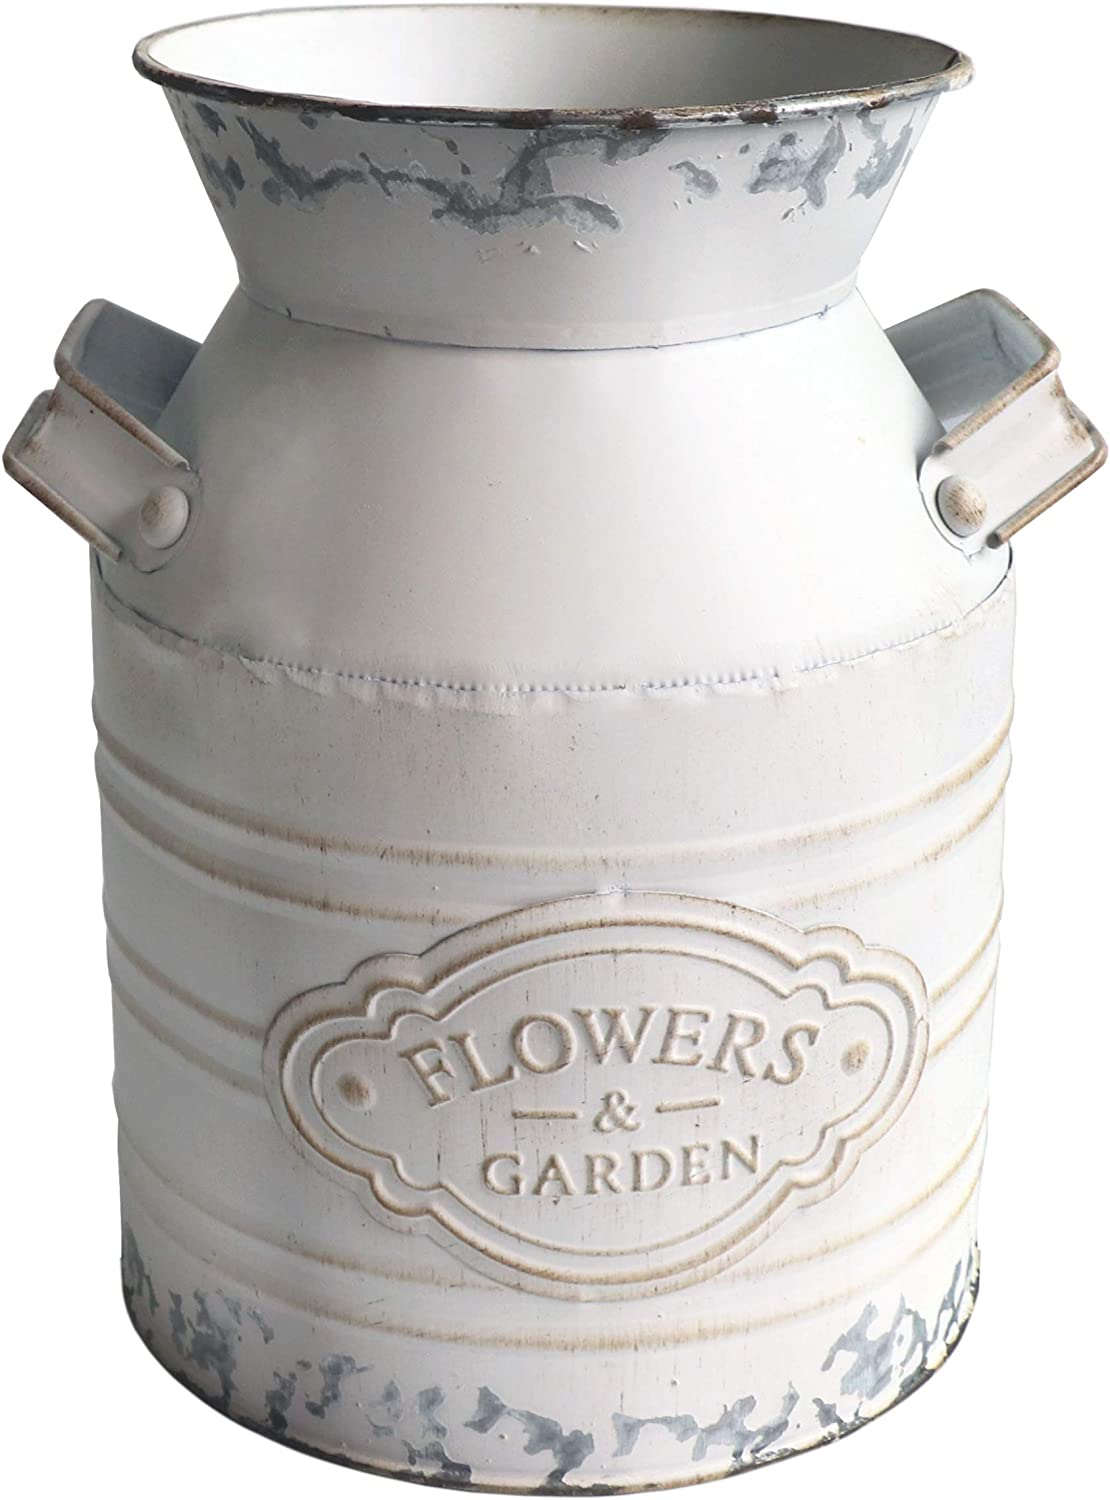 MISIXILE Vintage Farmhouse Vase,Metal Galvanized Milk Can,Shabby Chic Flowers Jug Vase, Country Rustic Decorative Buckets Home Decor Planter Vase with Handle